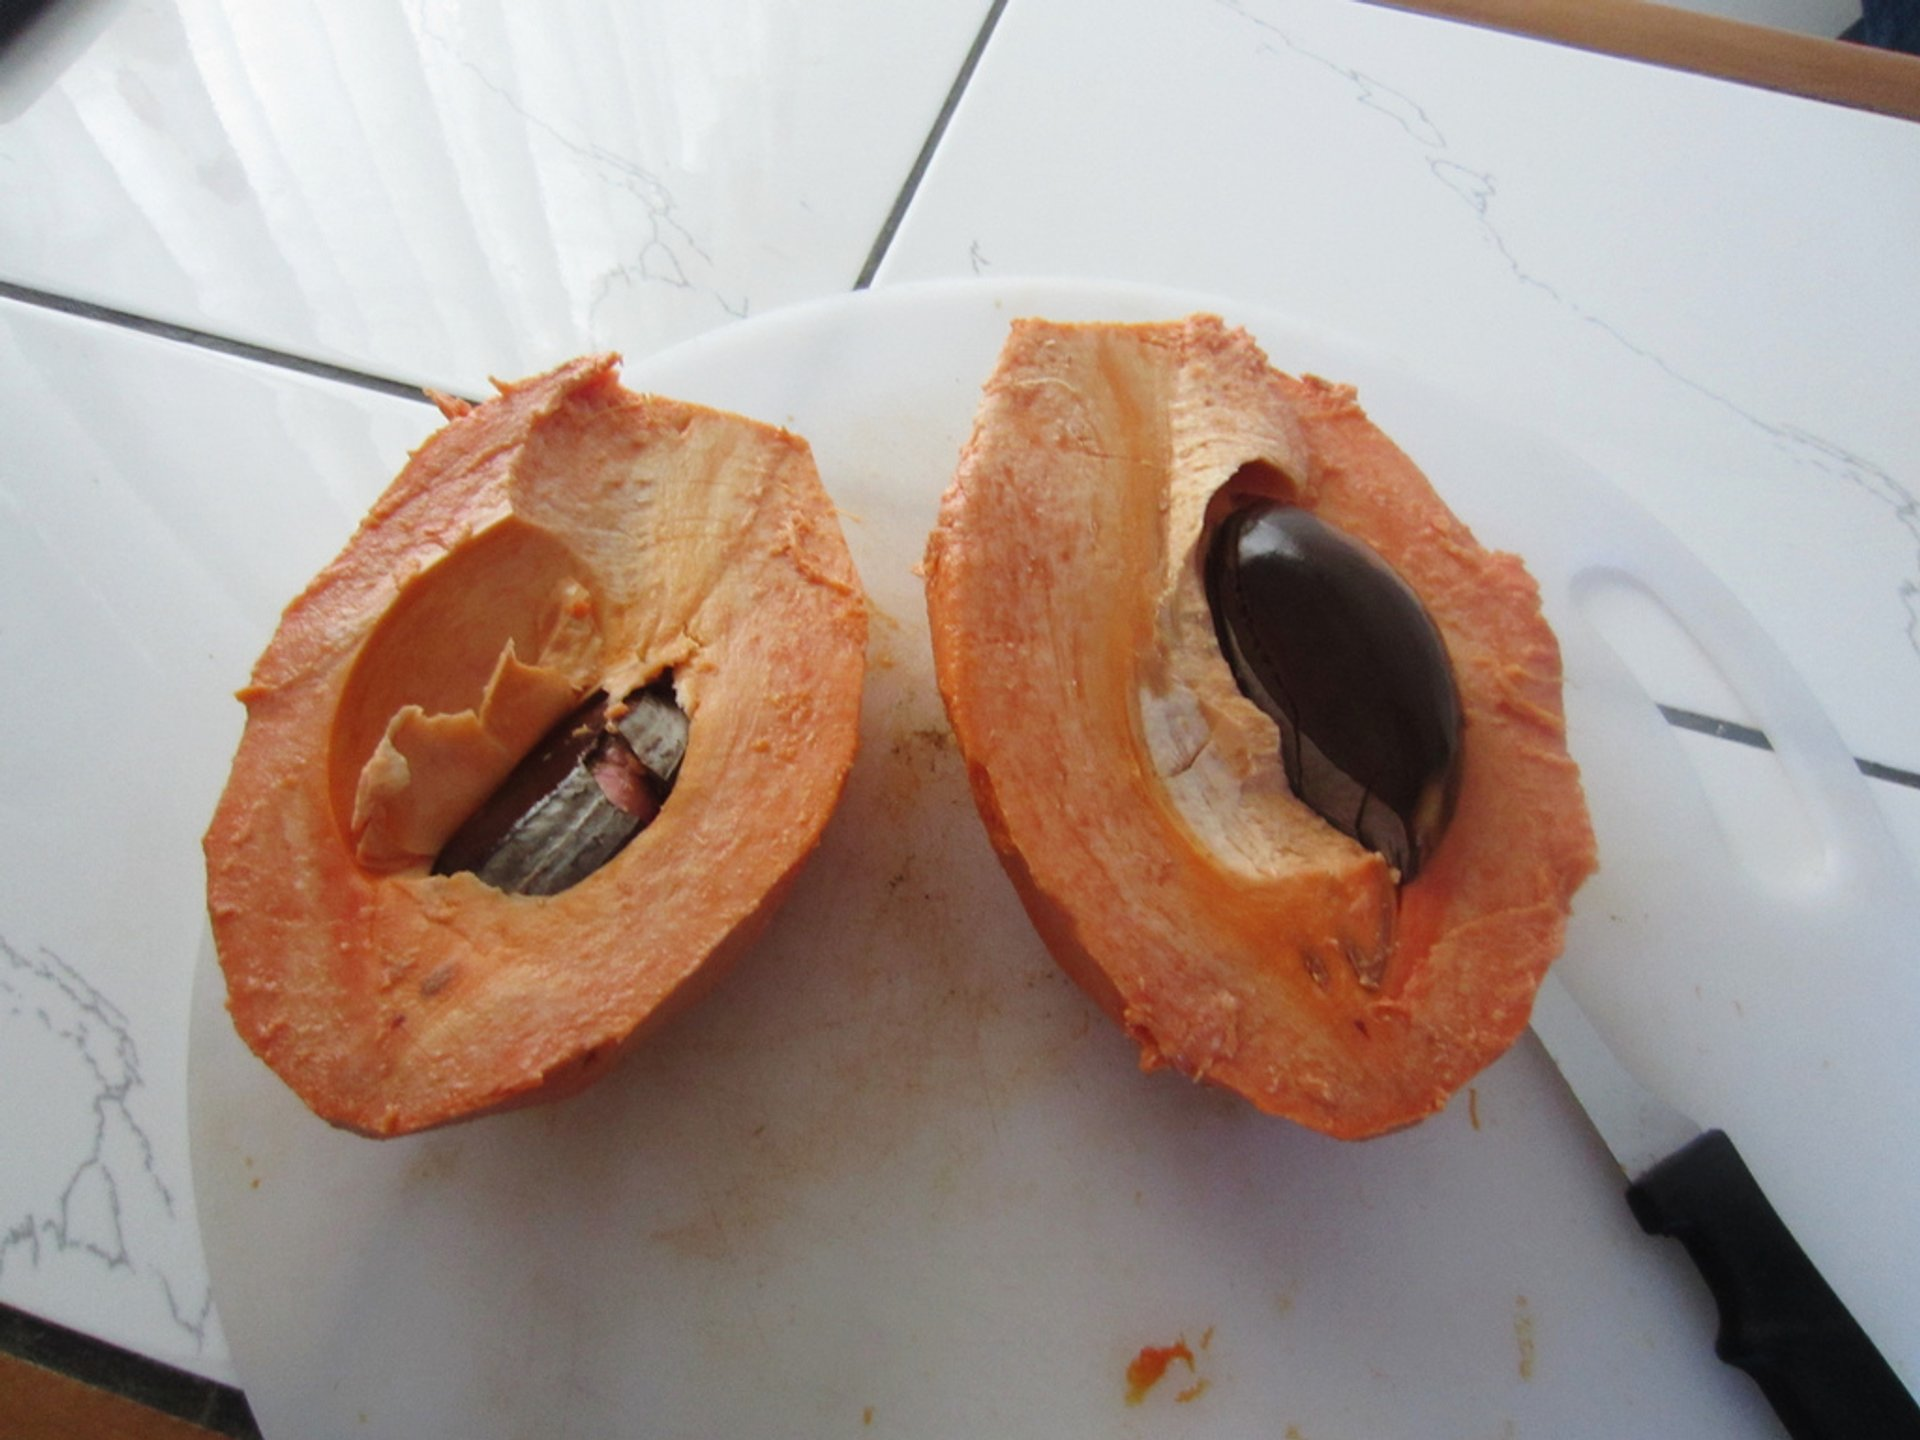 Sapote in Costa Rica 2020 - Best Time